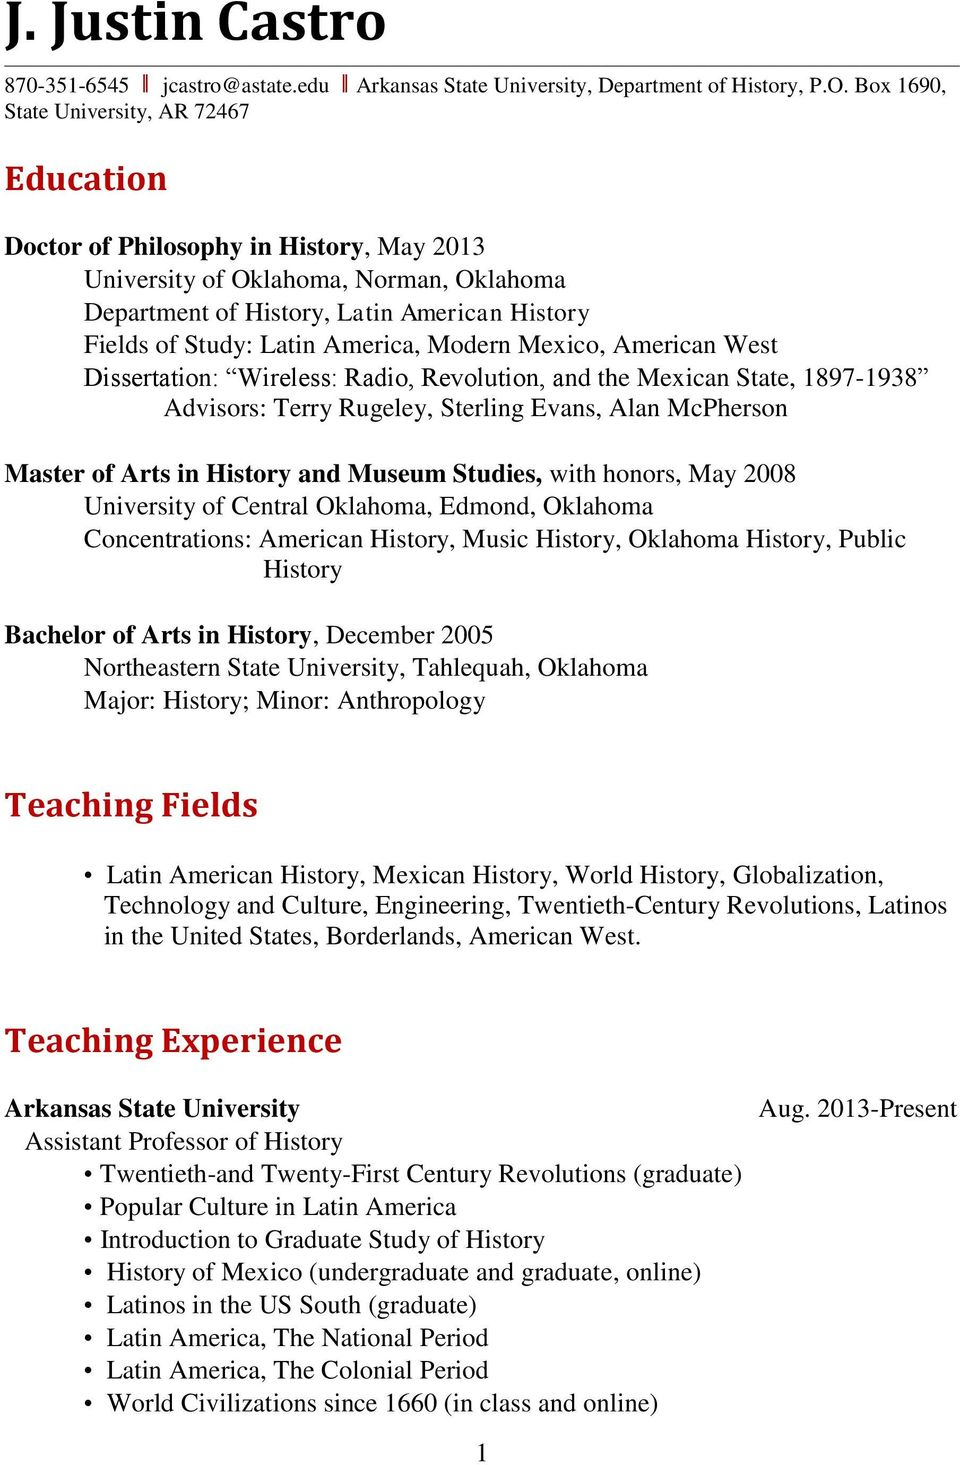 University of Central Oklahoma, Edmond, Oklahoma Concentrations: American History, Music History, Oklahoma History, Public History Bachelor of Arts in History, December 2005 Northeastern State